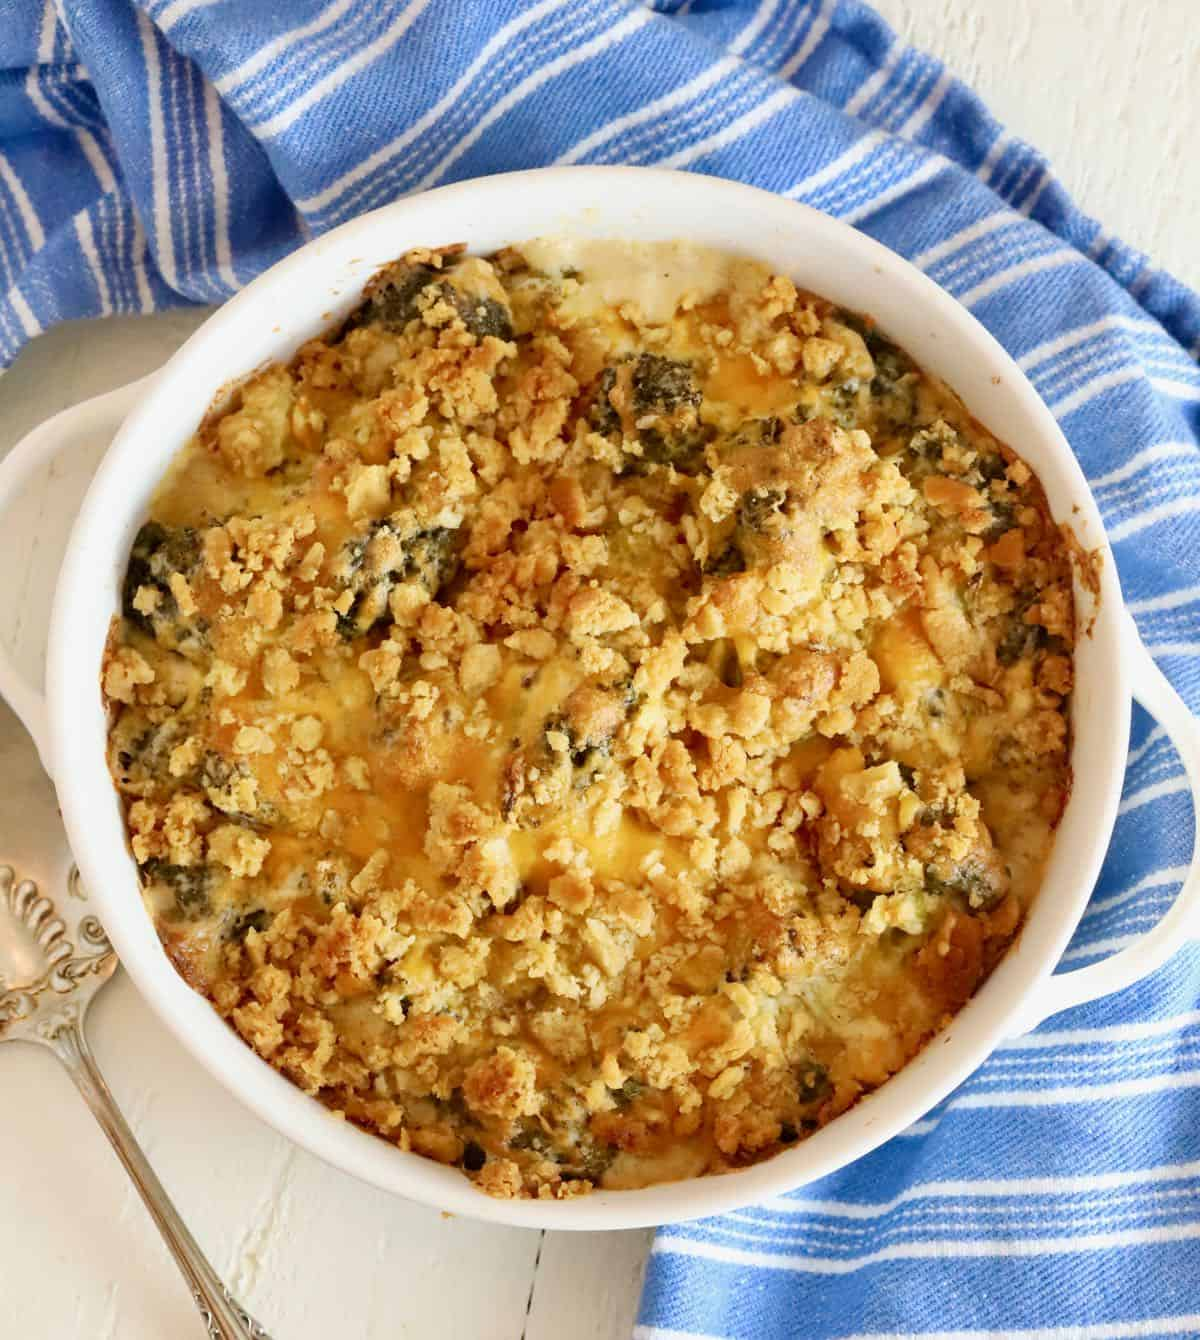 A round white baking dish full of broccoli cheese casserole.